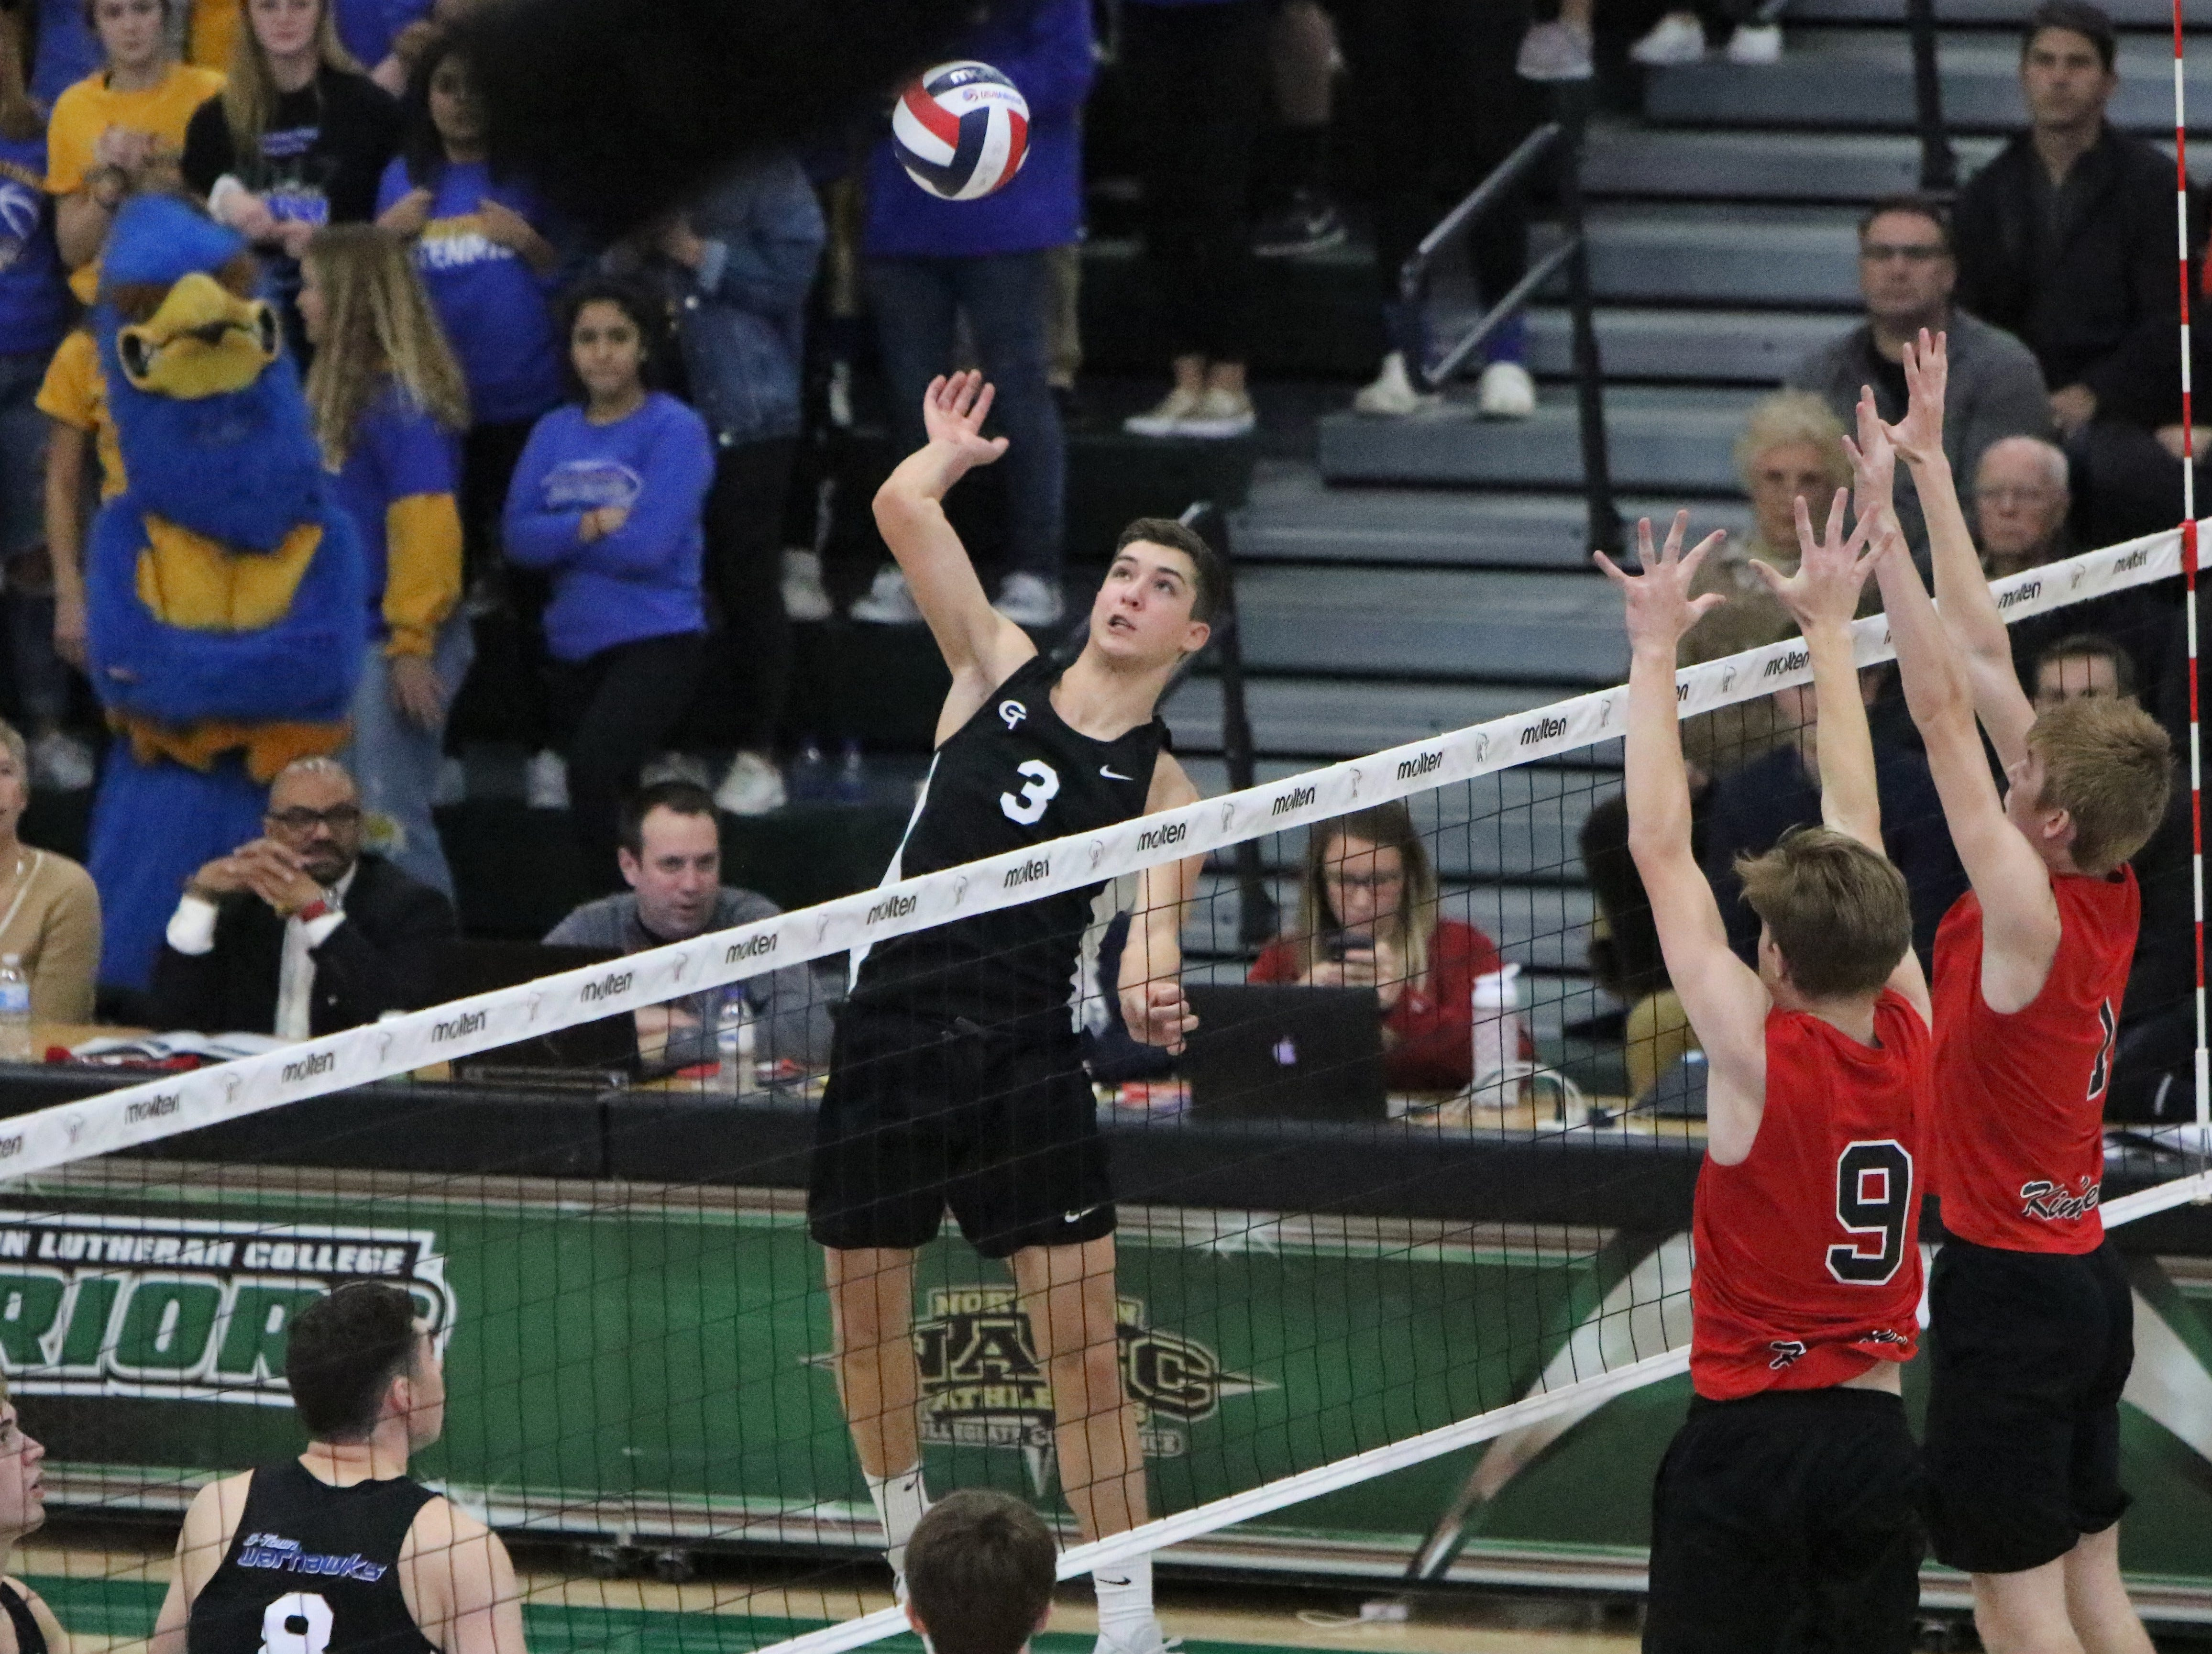 Germantown junior Drew Jansen winds up for a kill attempt during the WIAA state championship match against Kimberly on Saturday.